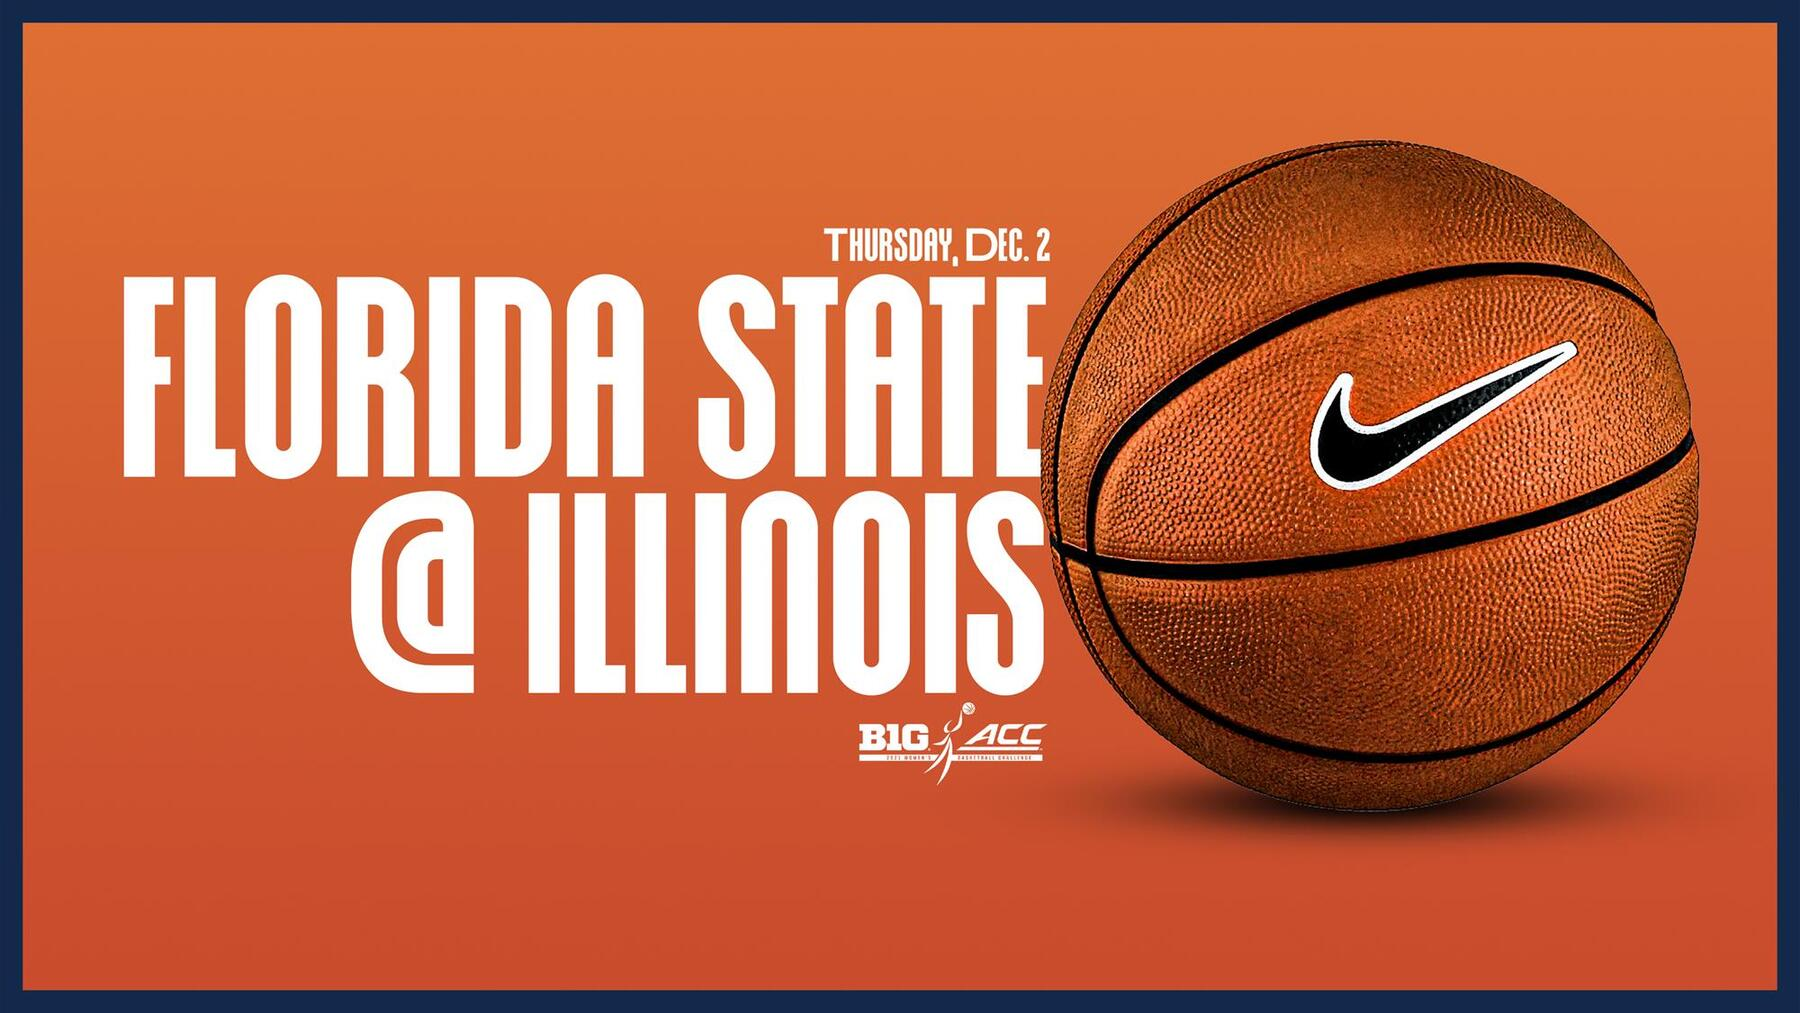 graphic announcing Florida State at Illinois game features image of a basketball